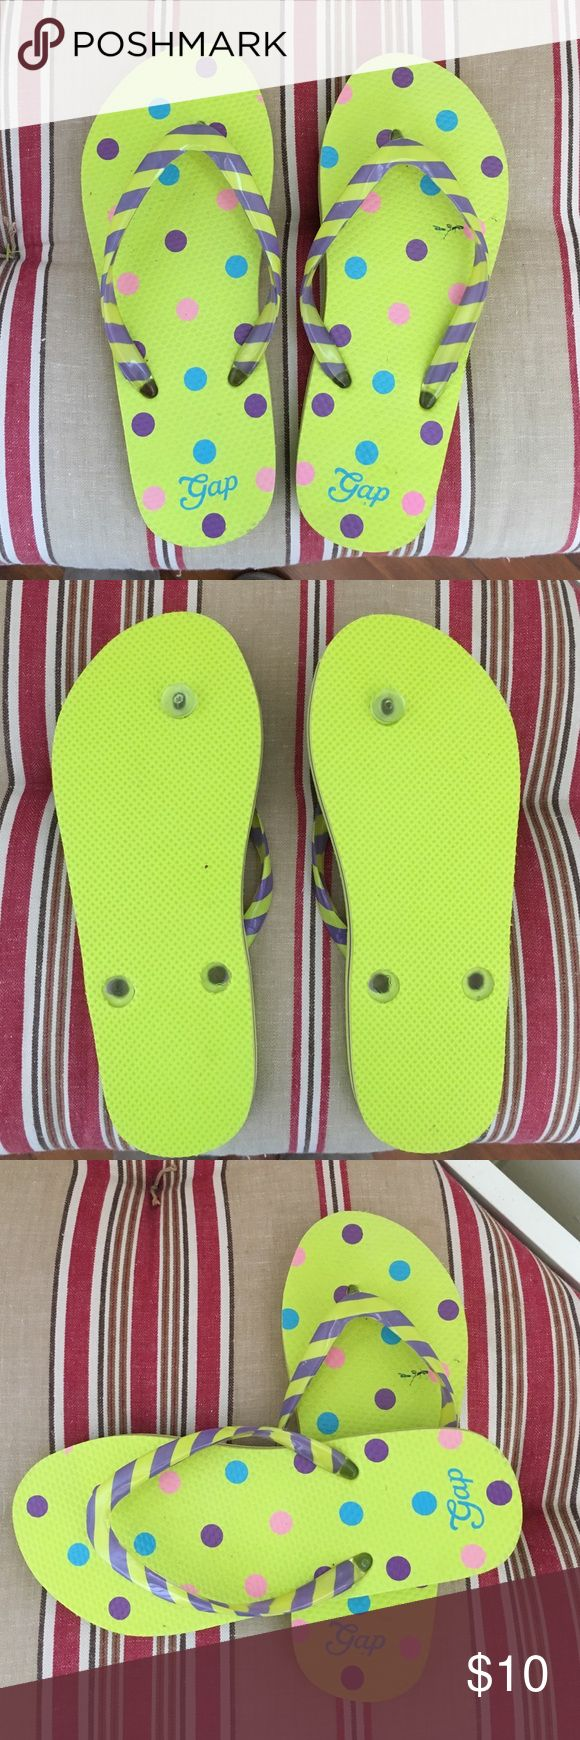 NWOT Girls Flip Flops New with out tags bright yellow with polka dots propel striped straps GAP Shoes Sandals & Flip Flops